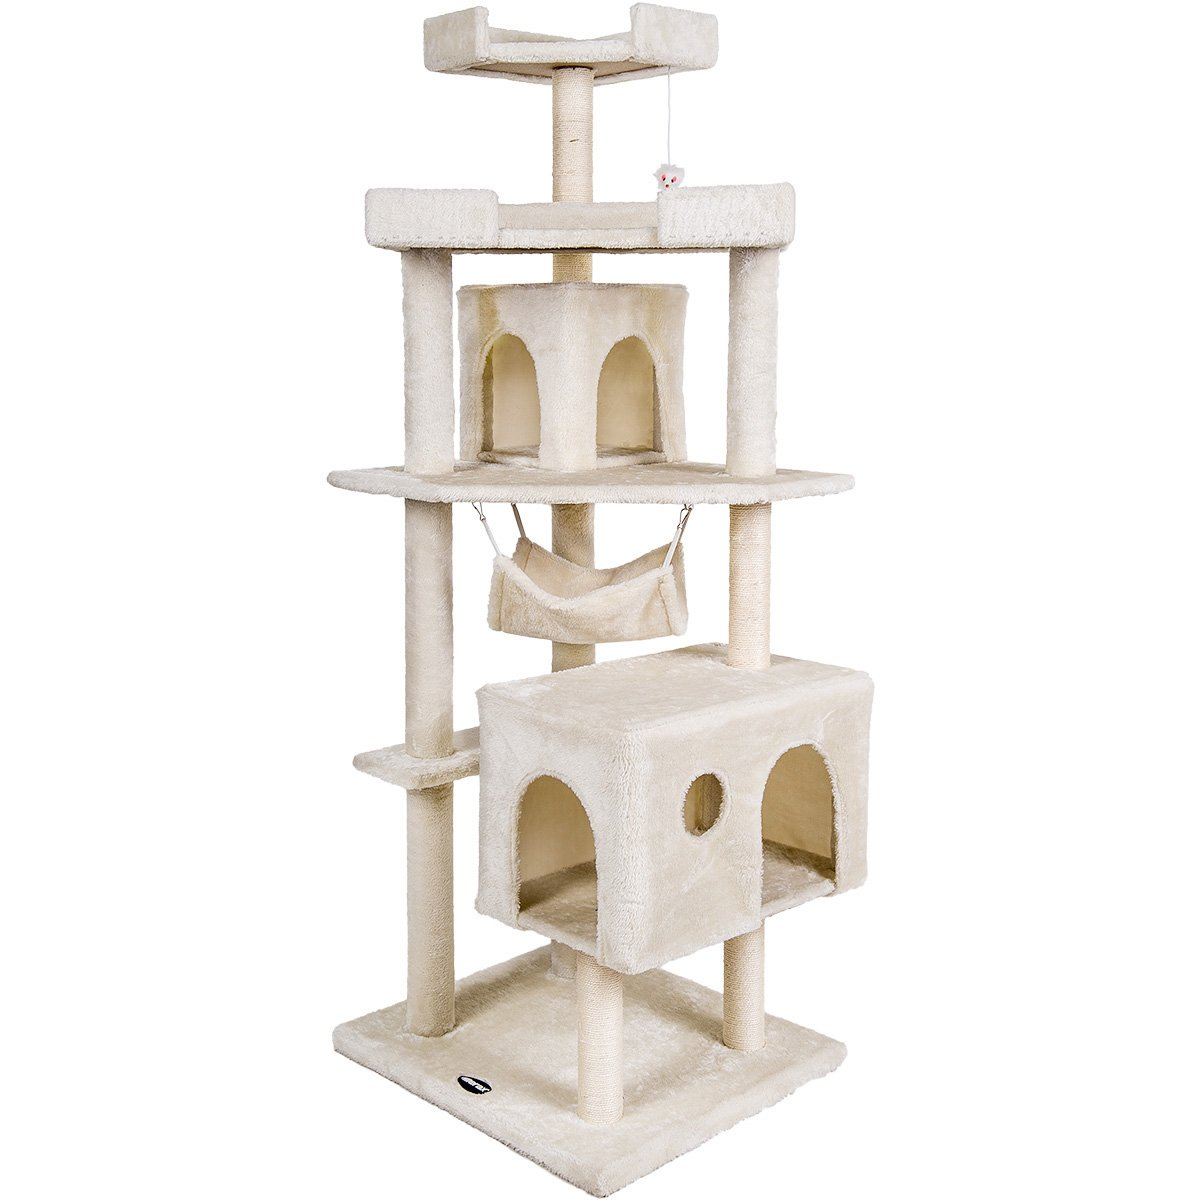 Merax Cat Tree Cat Tower with Condo House Furniture Design-NO.5